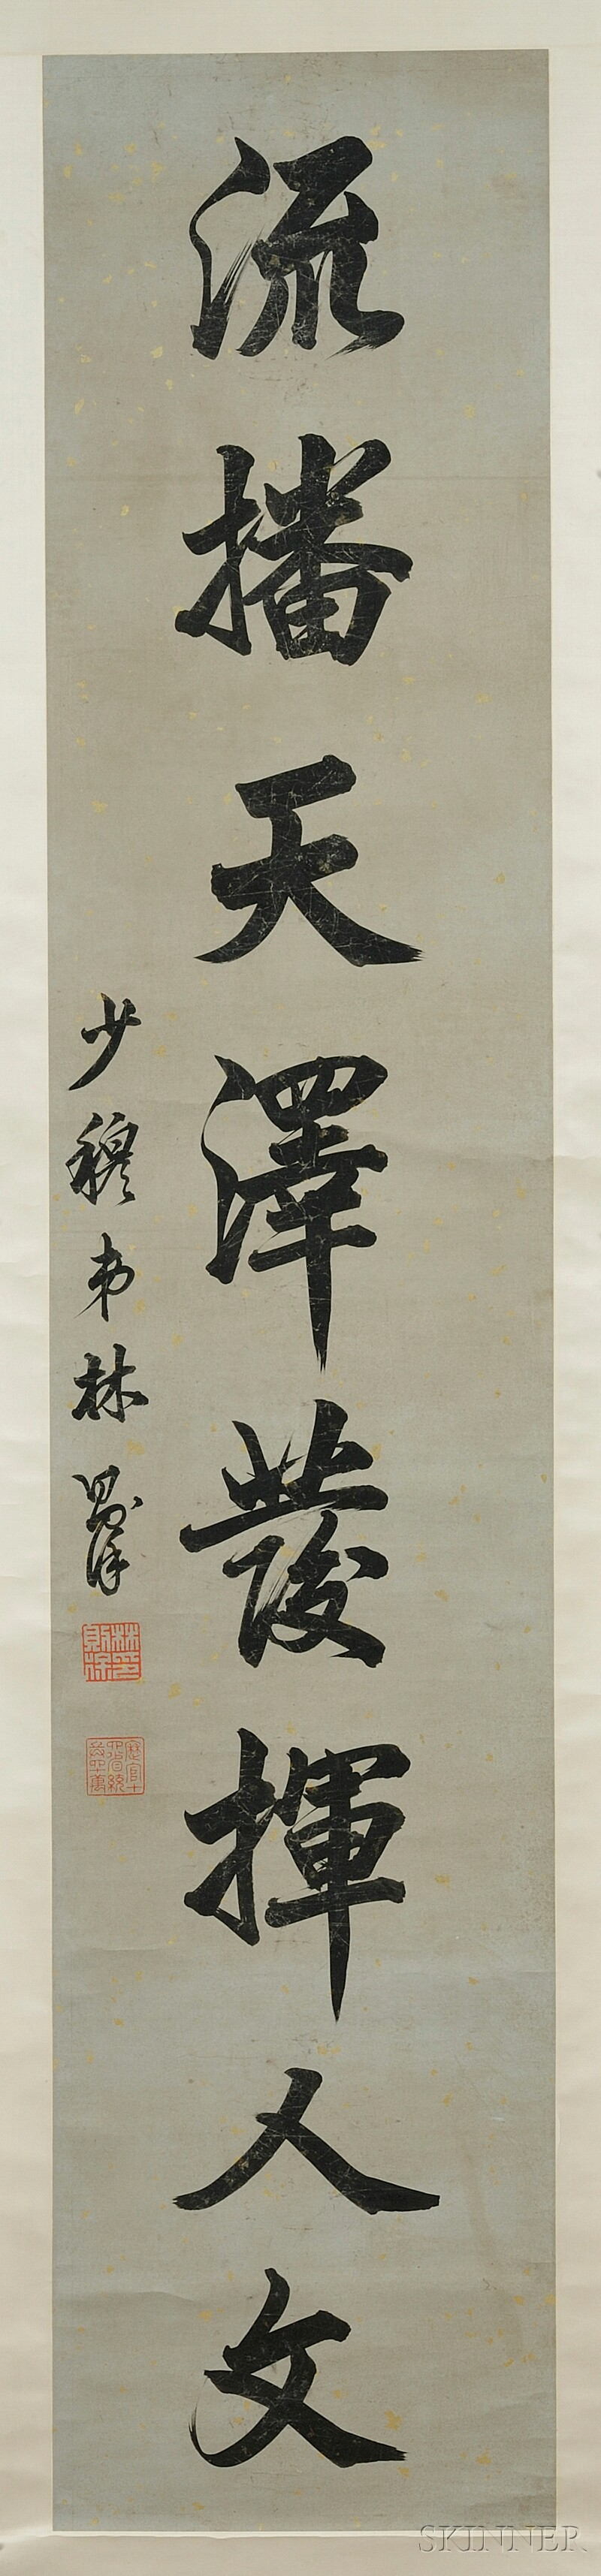 Pair of Calligraphy Couplets